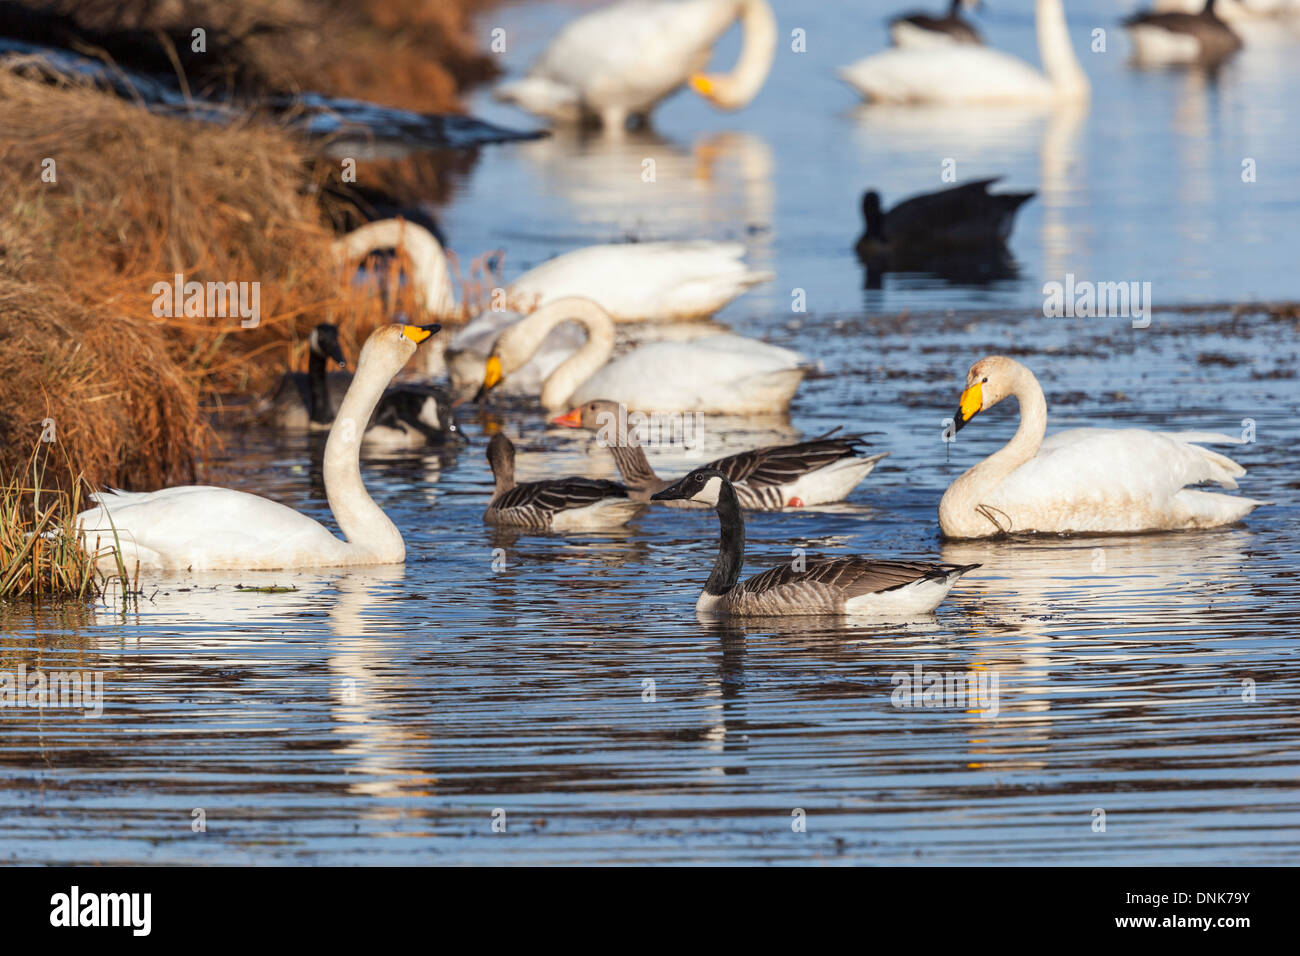 Canada Goose and Whooper Swan swimming in the river - Stock Image